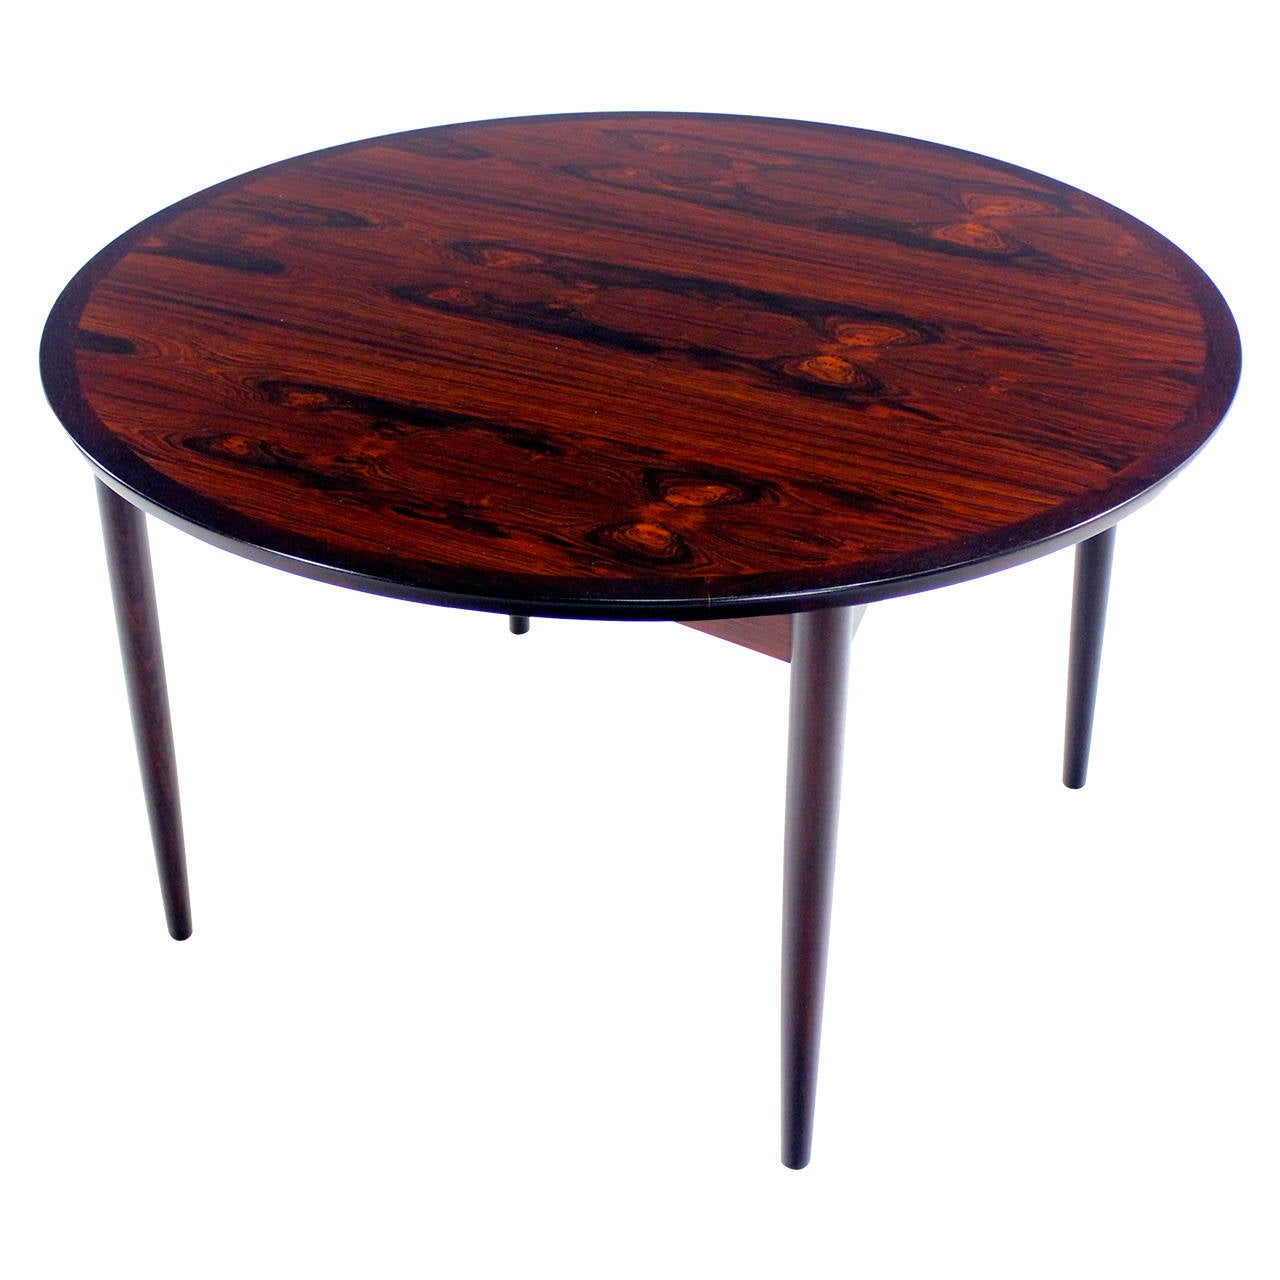 Danish modern rosewood cocktail table at 1stdibs for Cocktail tables for sale in kzn